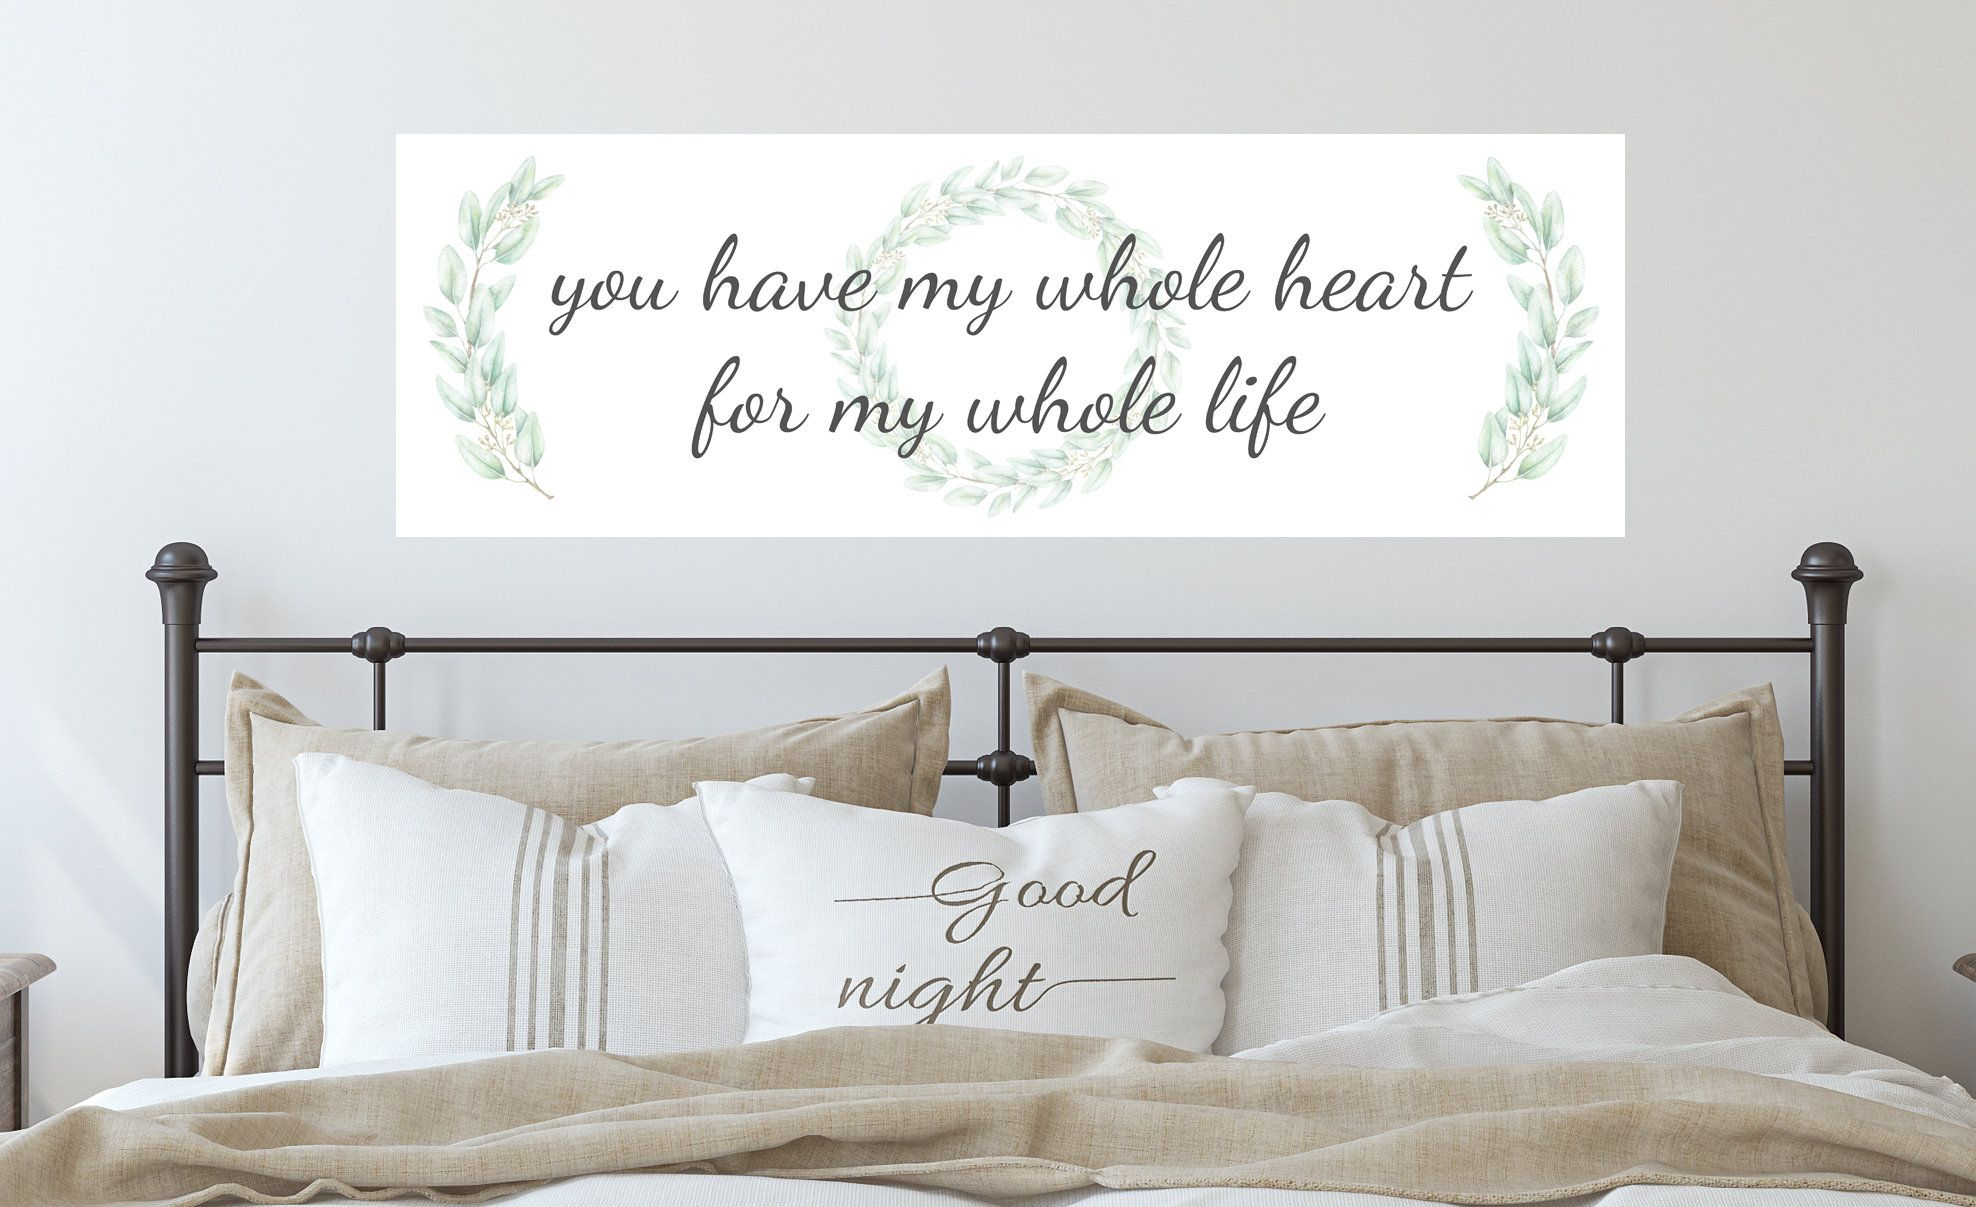 Pin On Inspirational Quotes Signs For Home Bedroom